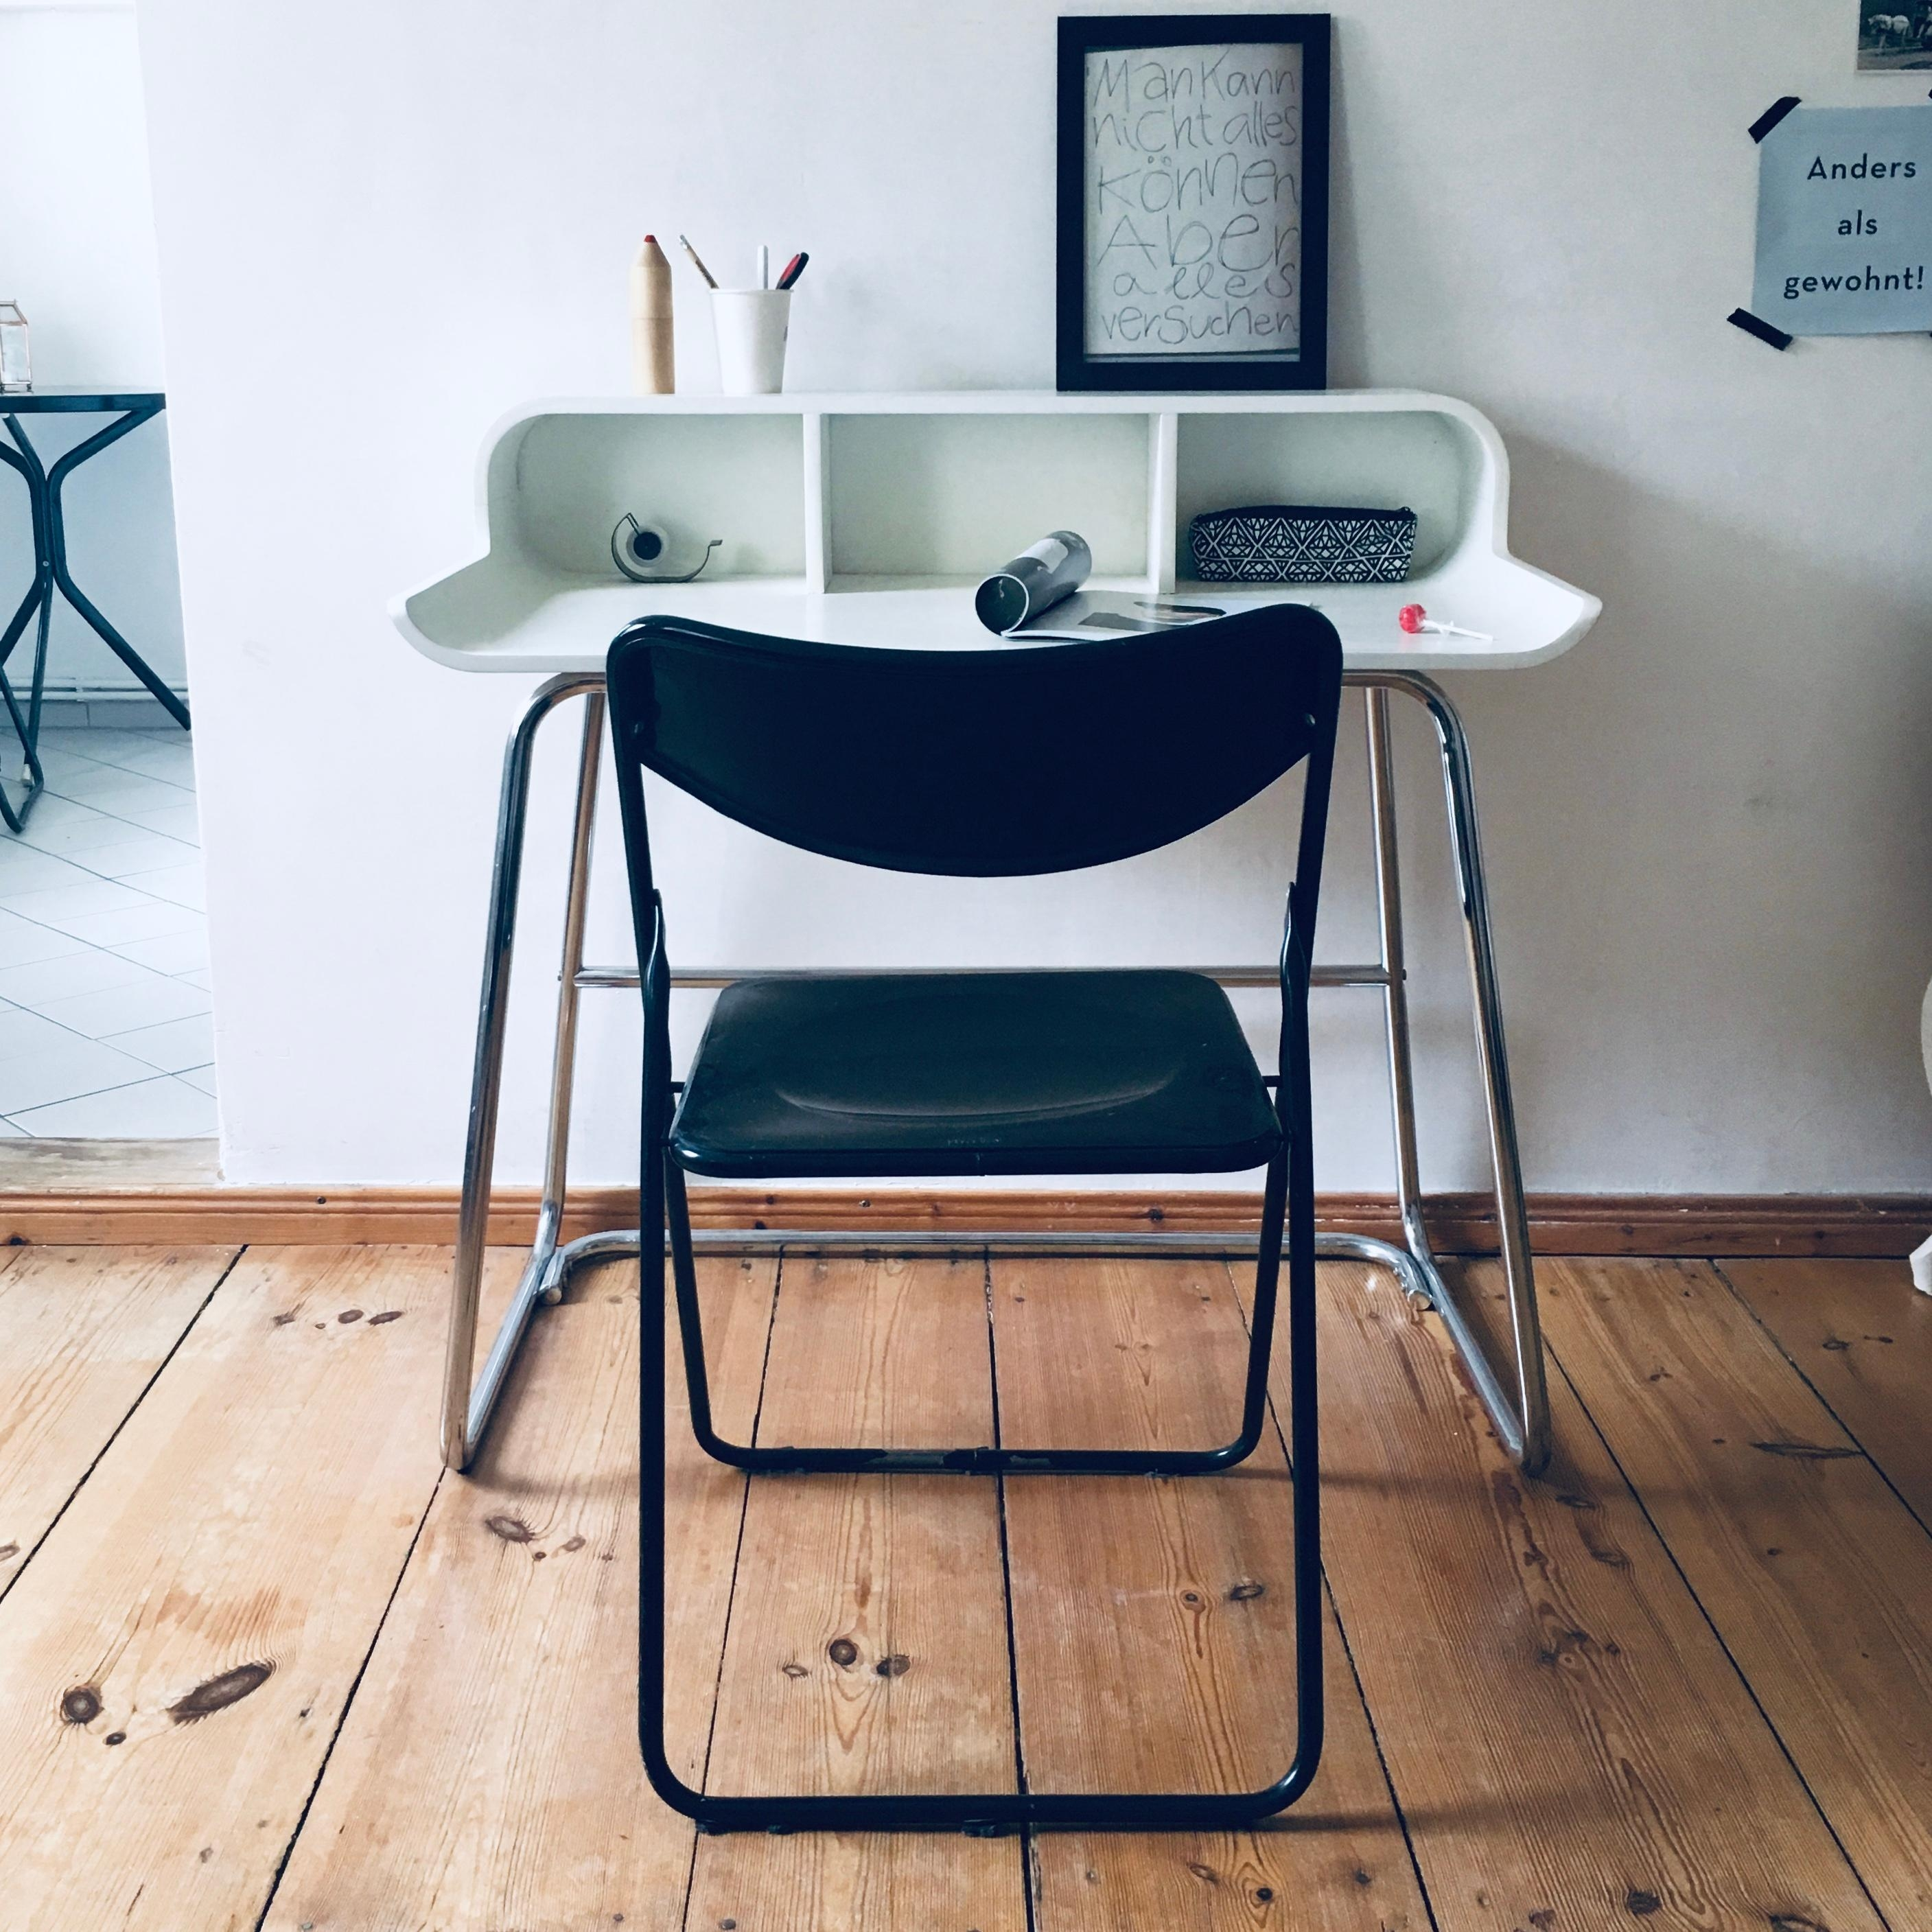 #desk #homeoffice #skandistyle #berlineraltbau #worktravel #vintage #minimalliving